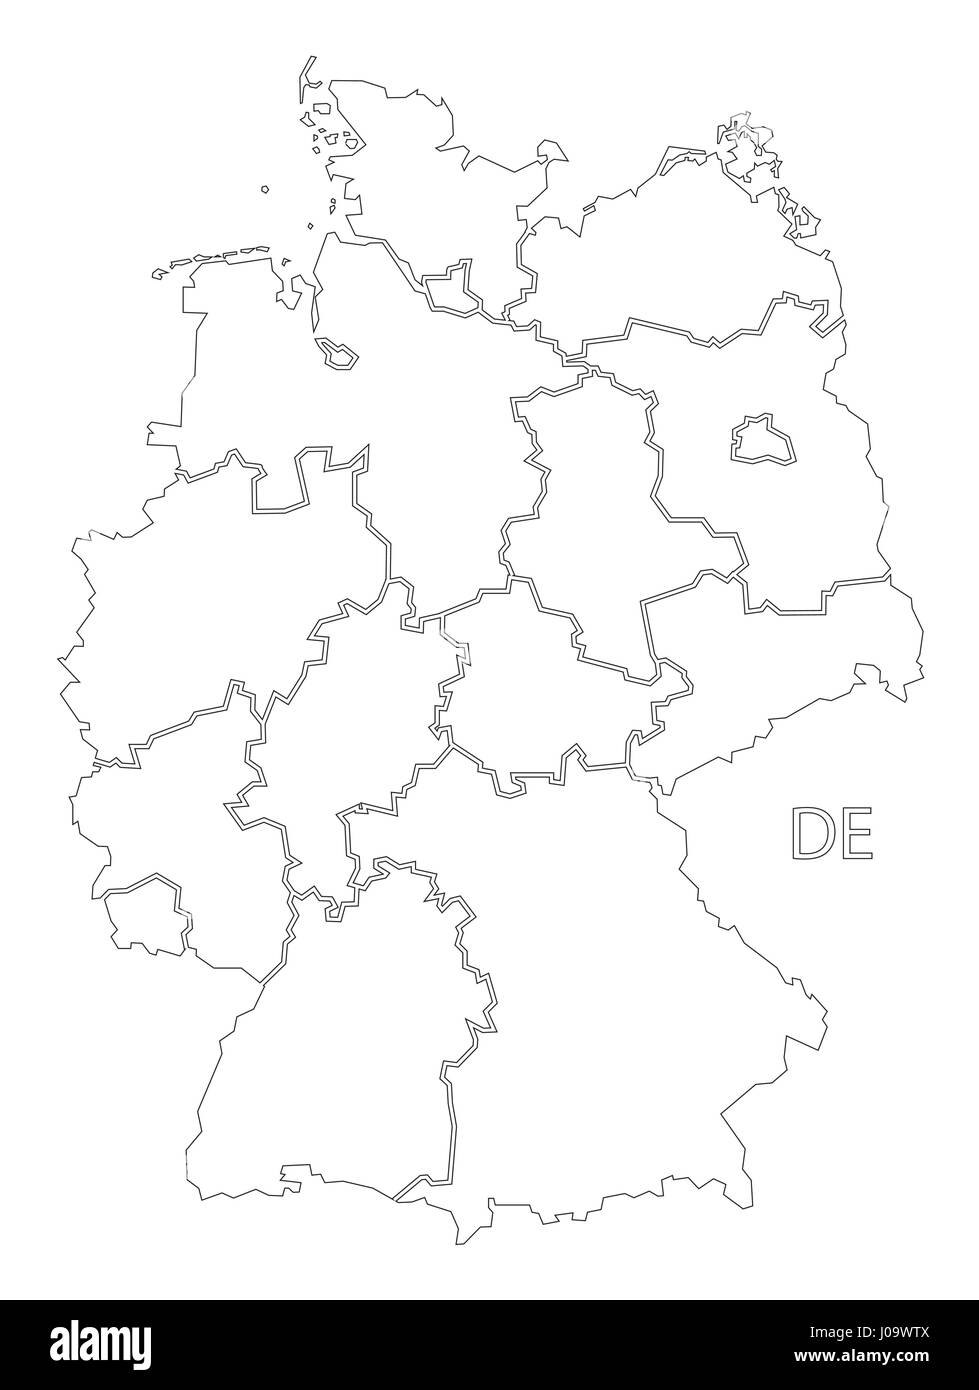 Germany Outline Silhouette Map Illustration Stock Photos Germany